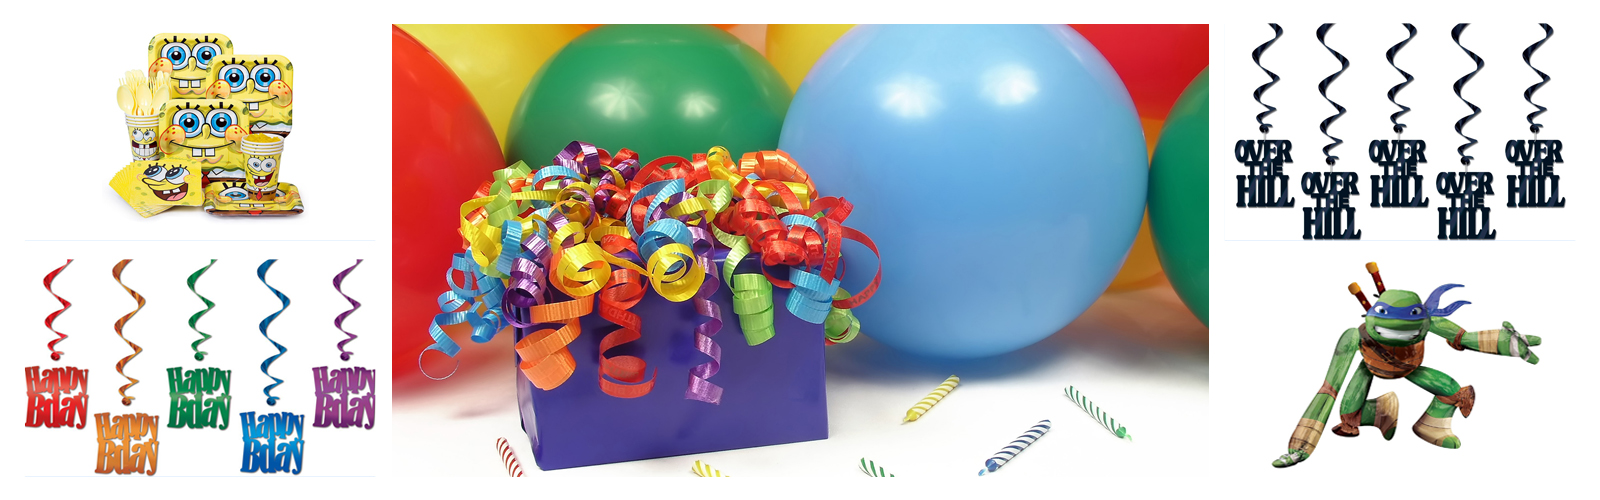 Party supplies in Bemidji Minnesota, Blackduck, Cass Lake, Bagley, Fosston, Park Rapids, Grand Rapids MN